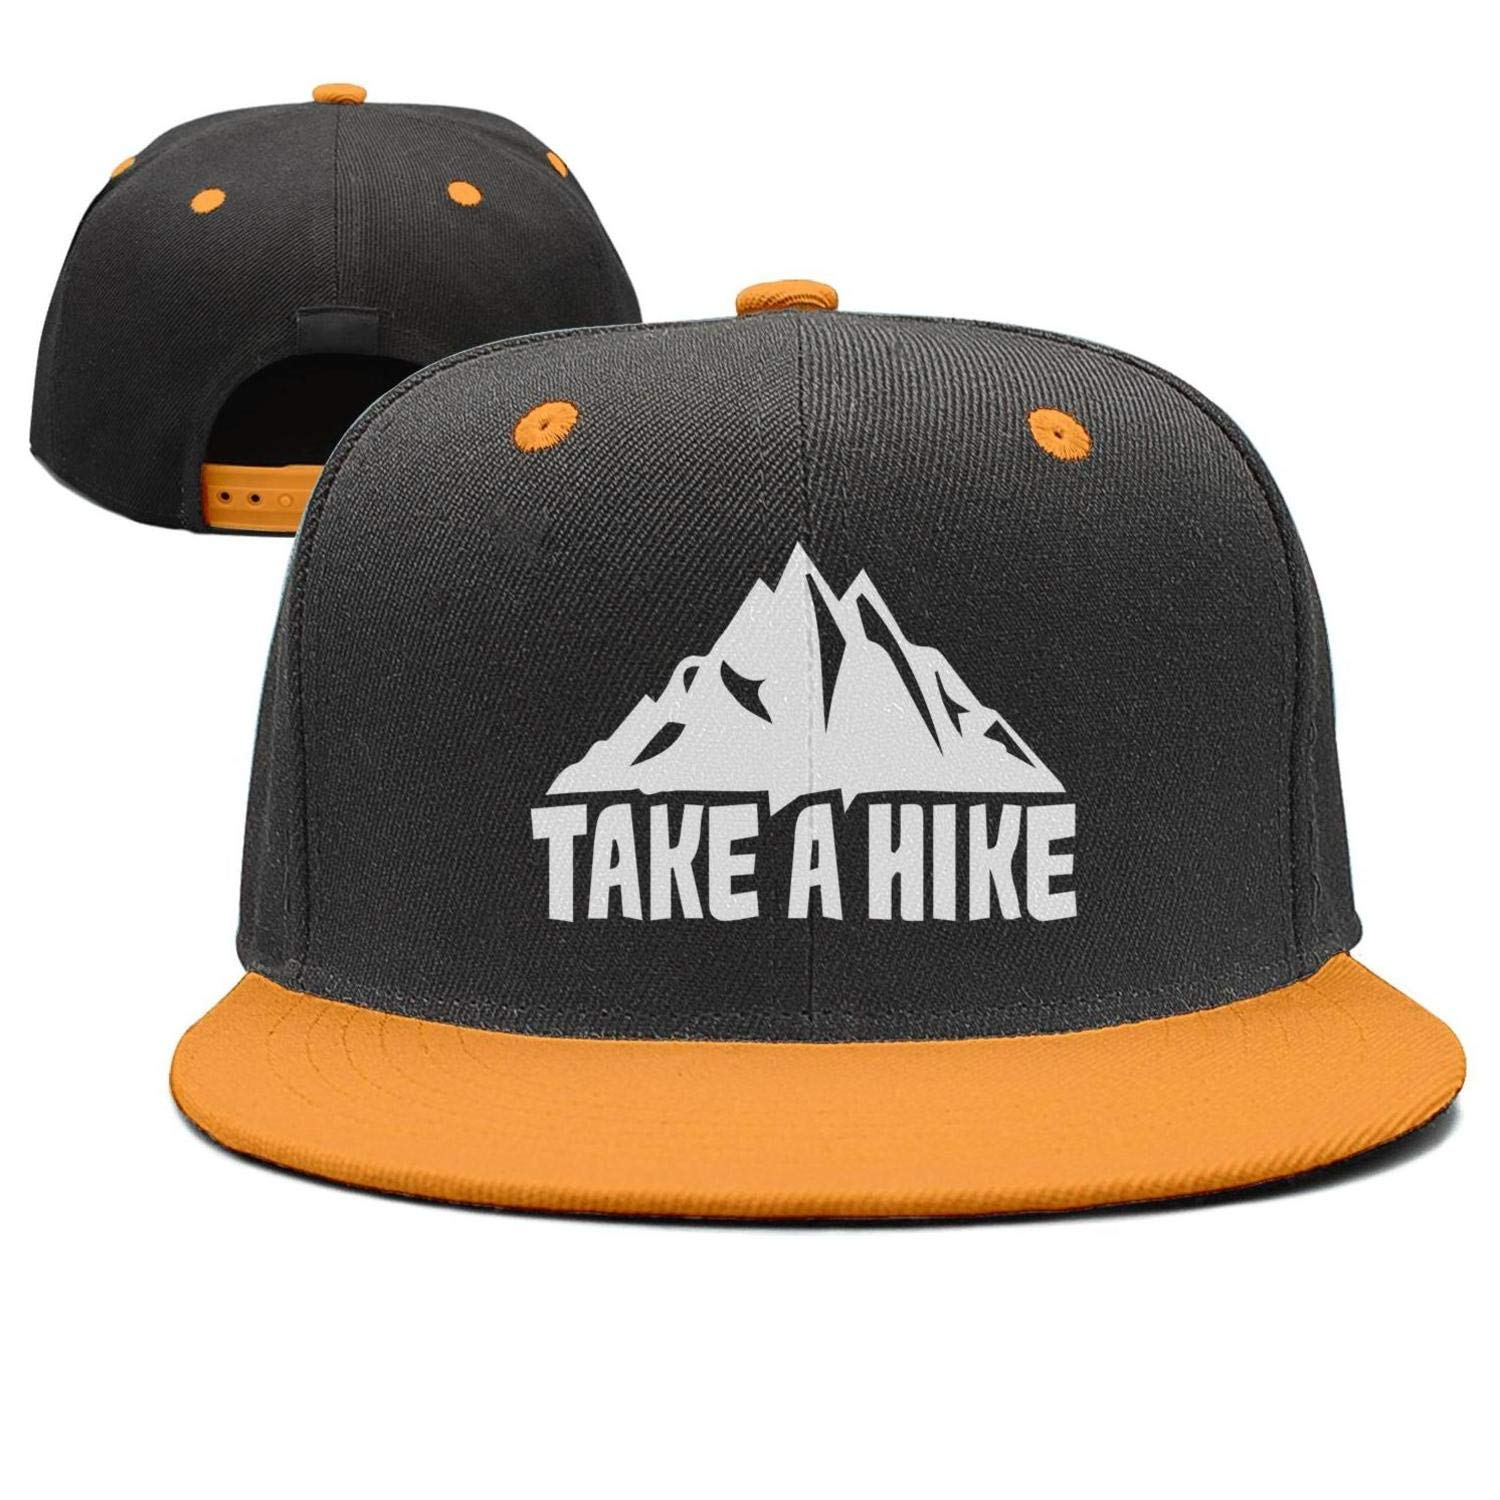 Unisex Hat + Baseball Cap + Dad Hat + Baseball Hat - Take A Hike